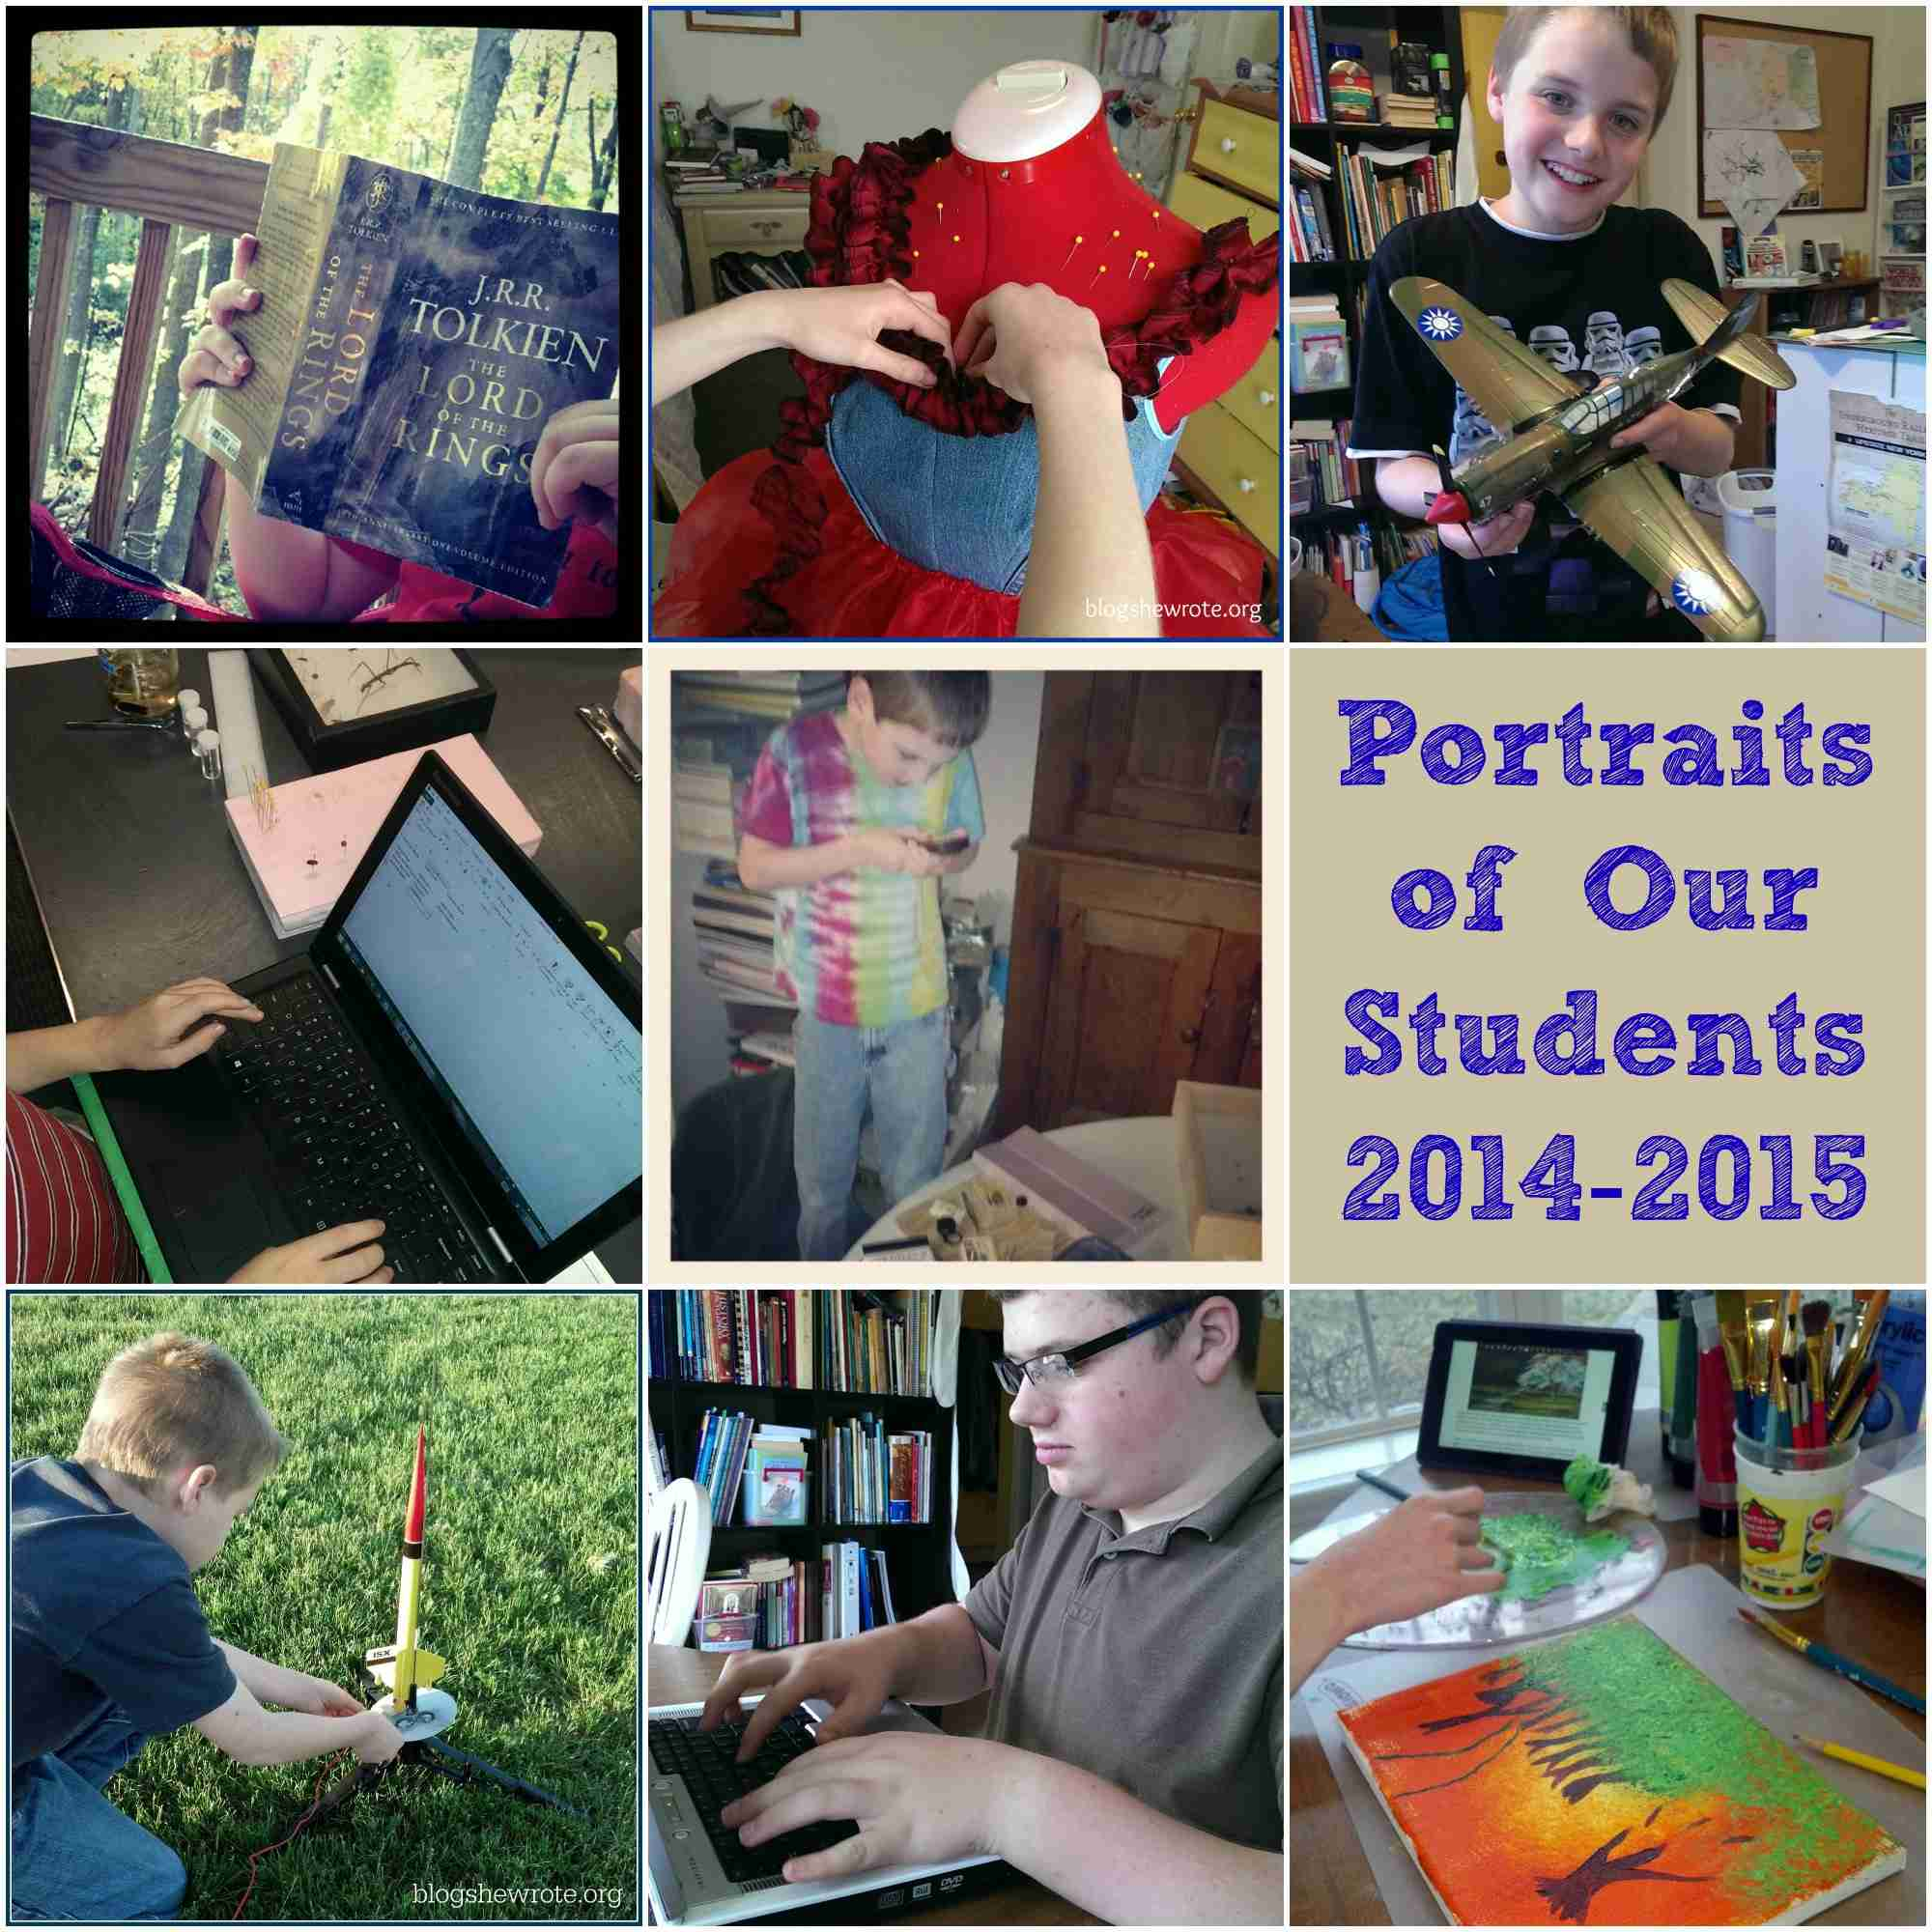 Blog, She Wrote: Portraits of Our Students 2014-2015